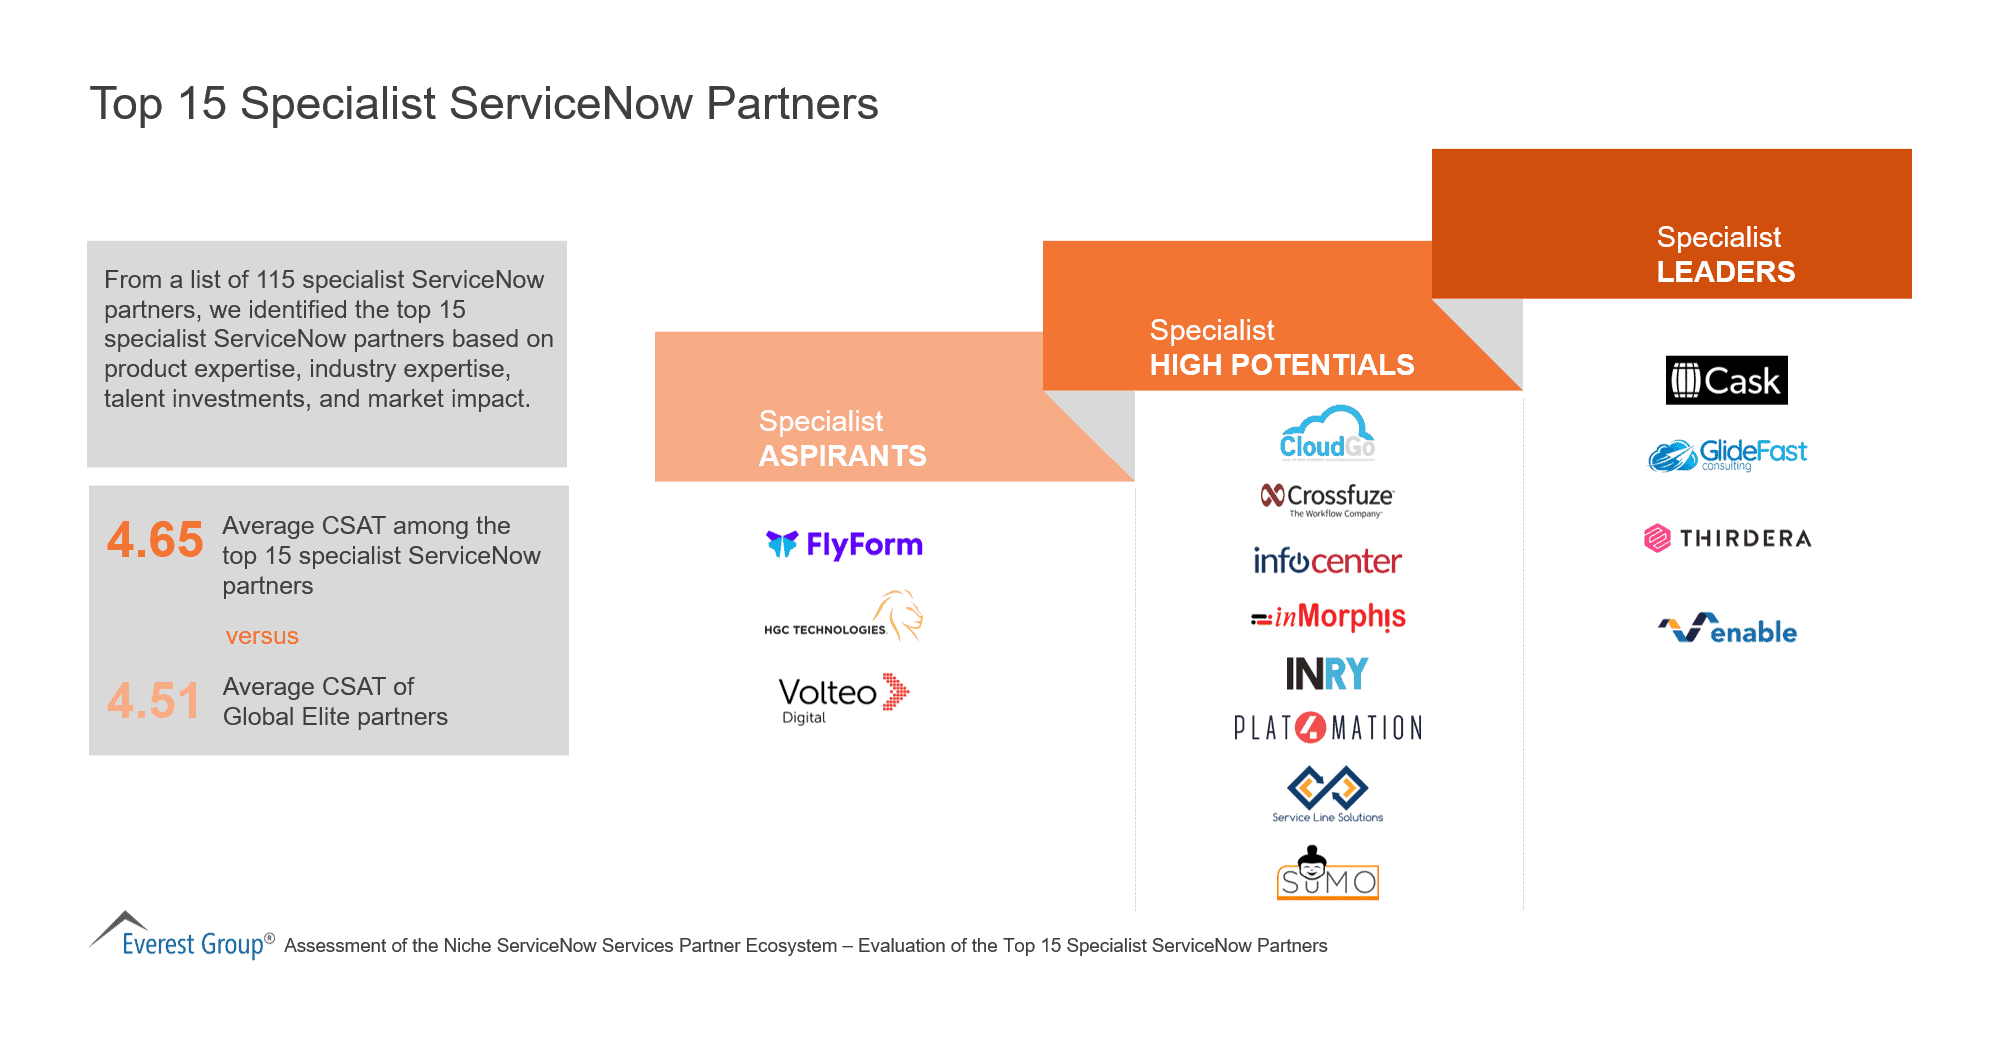 Top 15 Specialist ServiceNow Partners